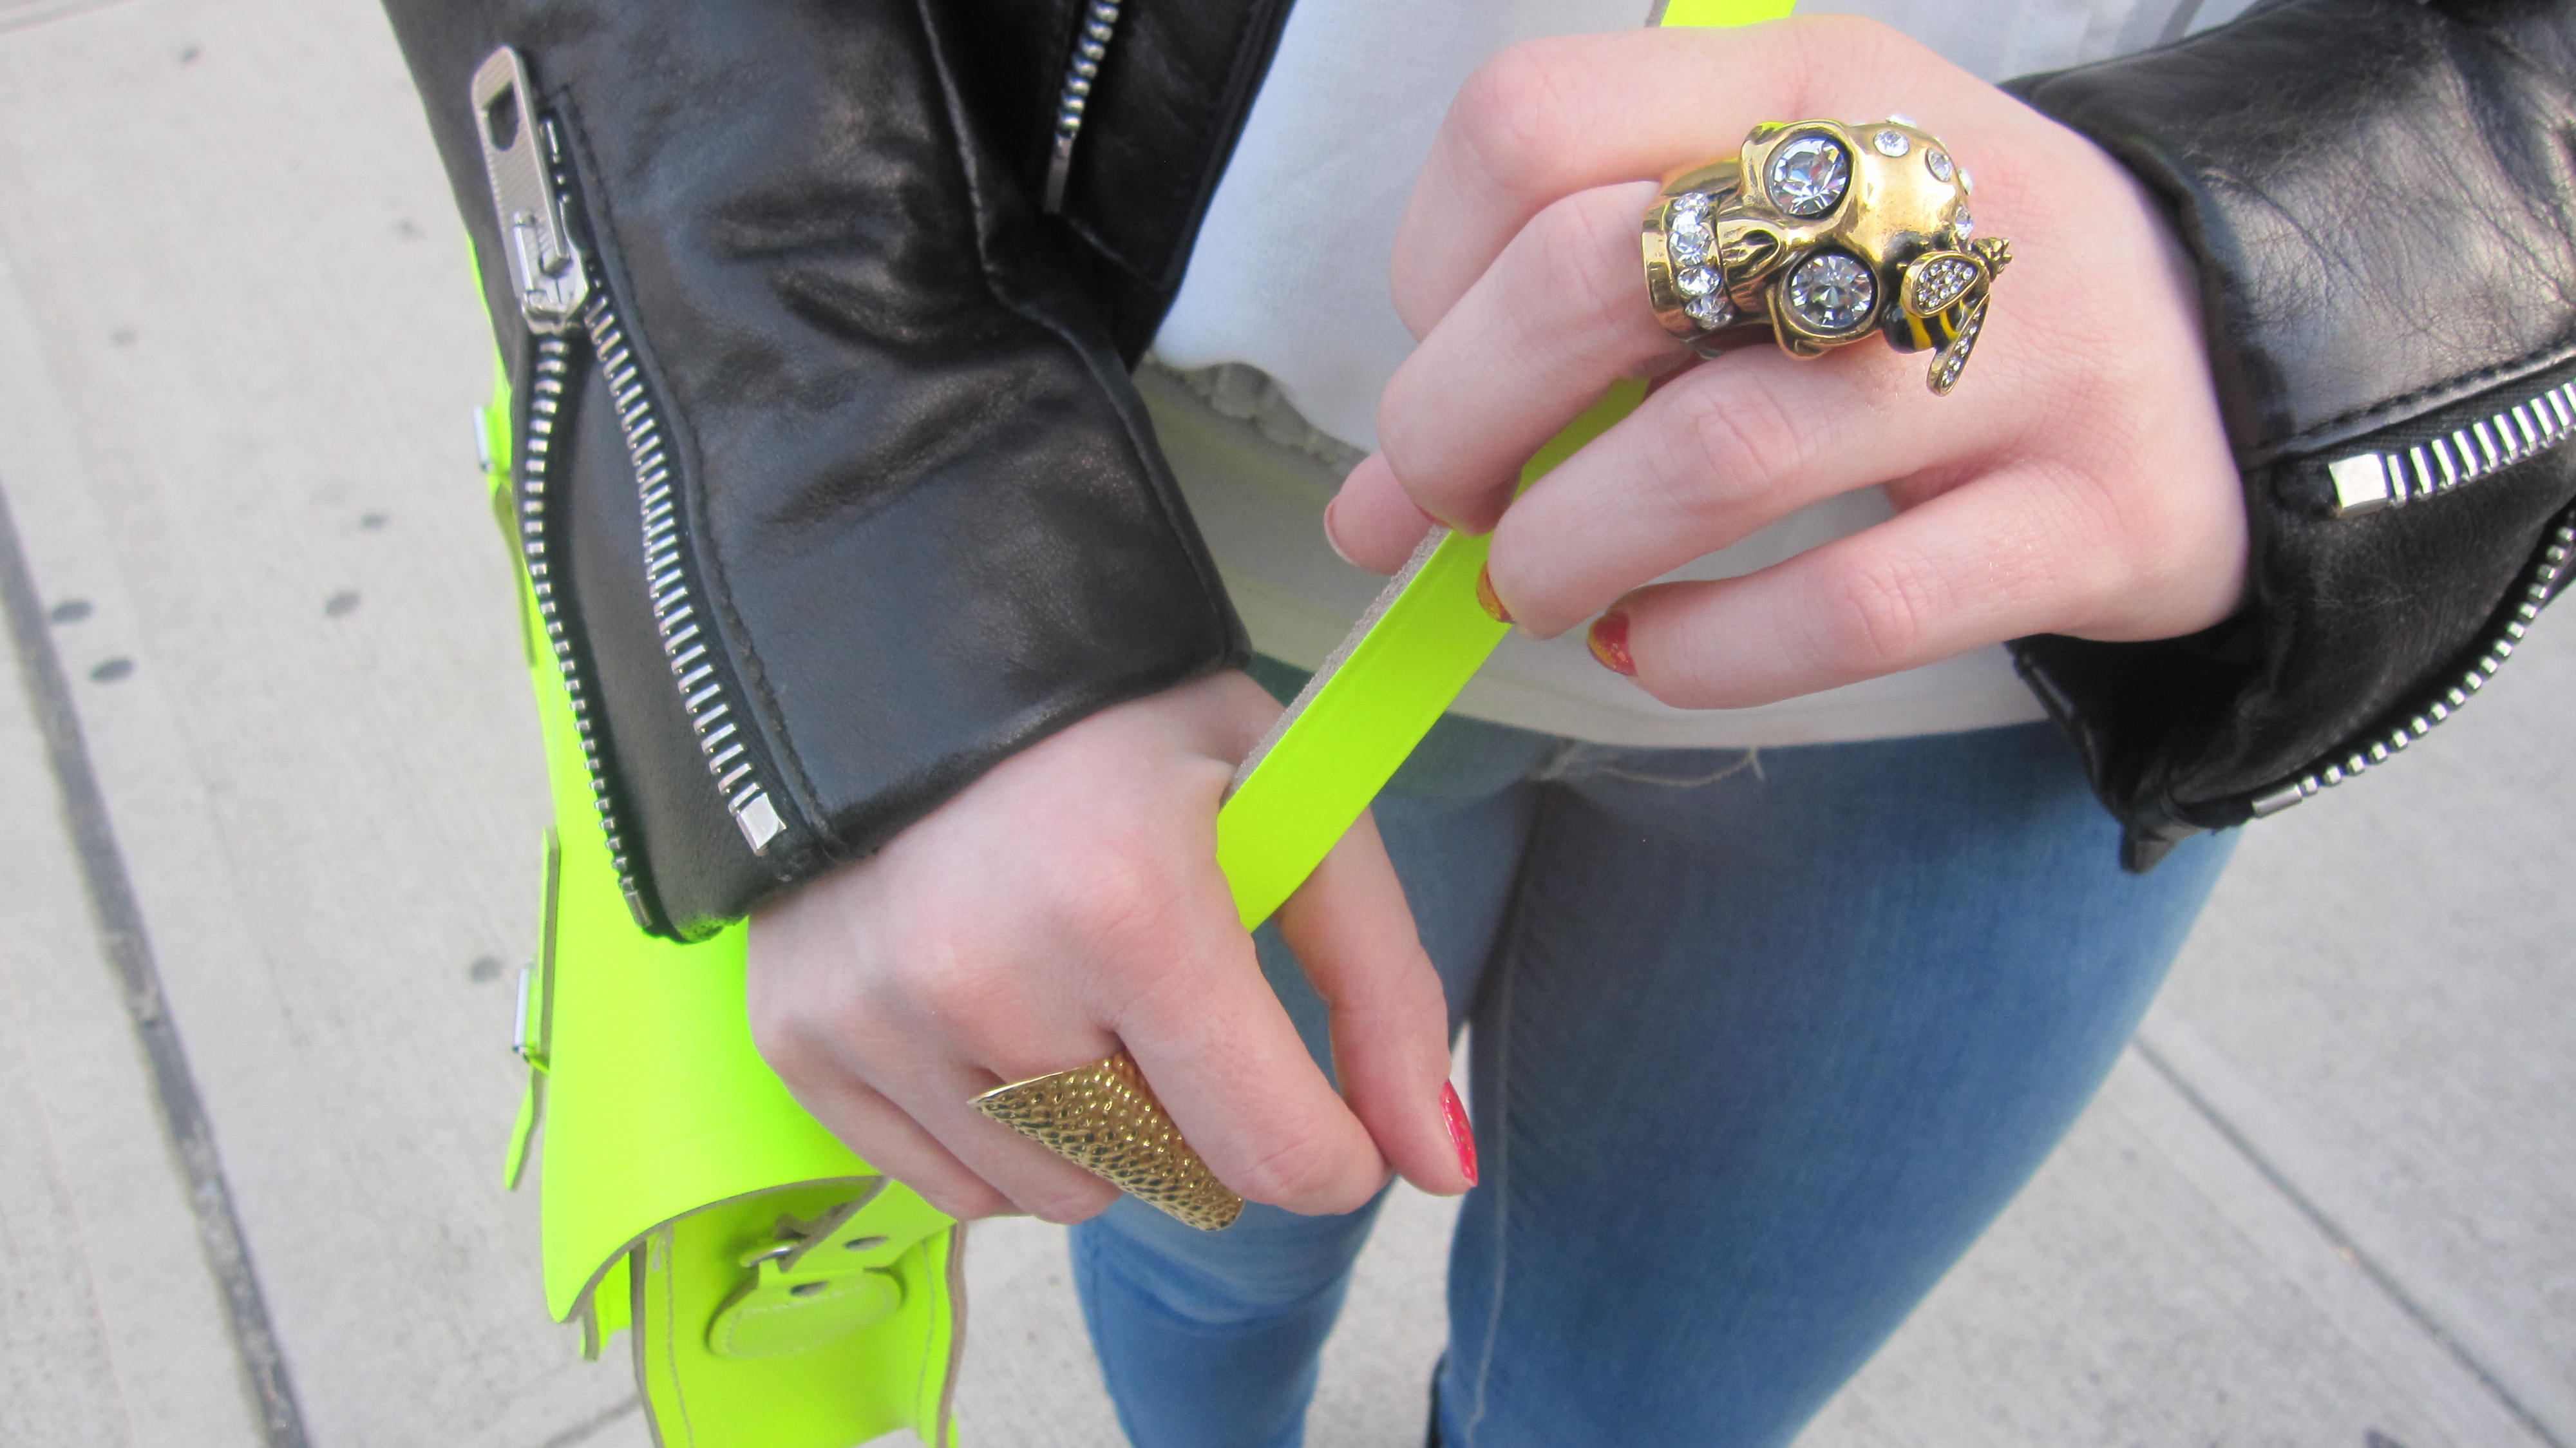 014 Balenciaga and neon yellow